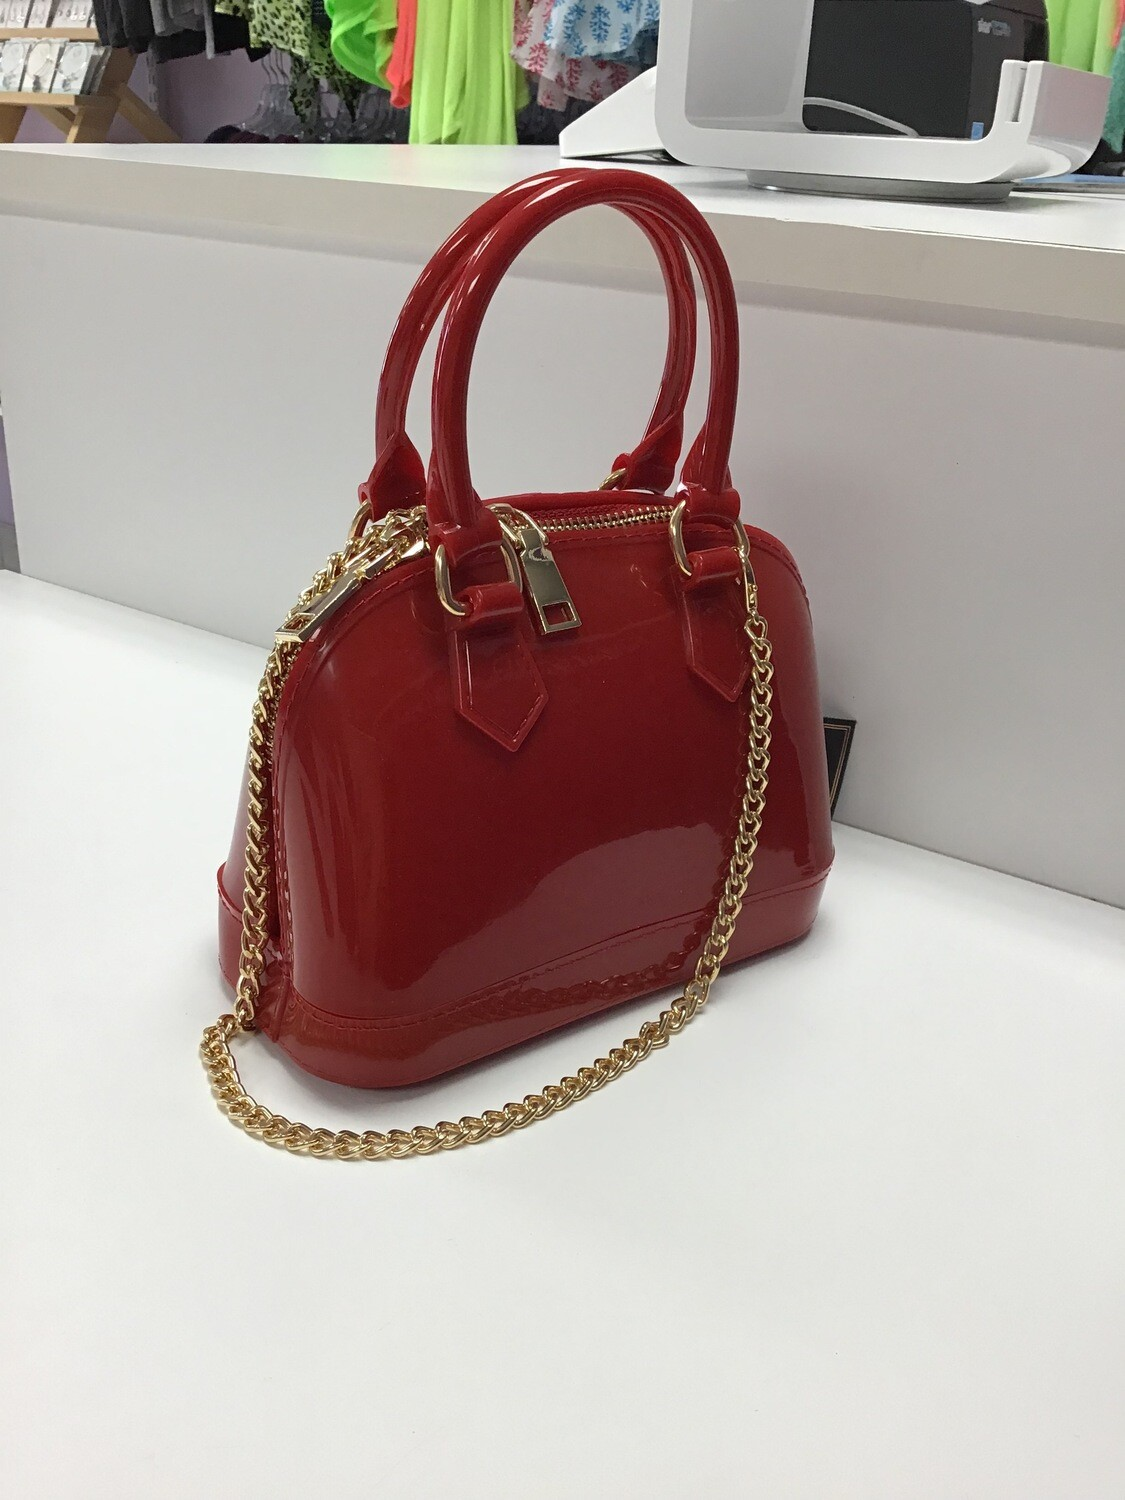 Miniture Jelly Handbags with Chain Strap